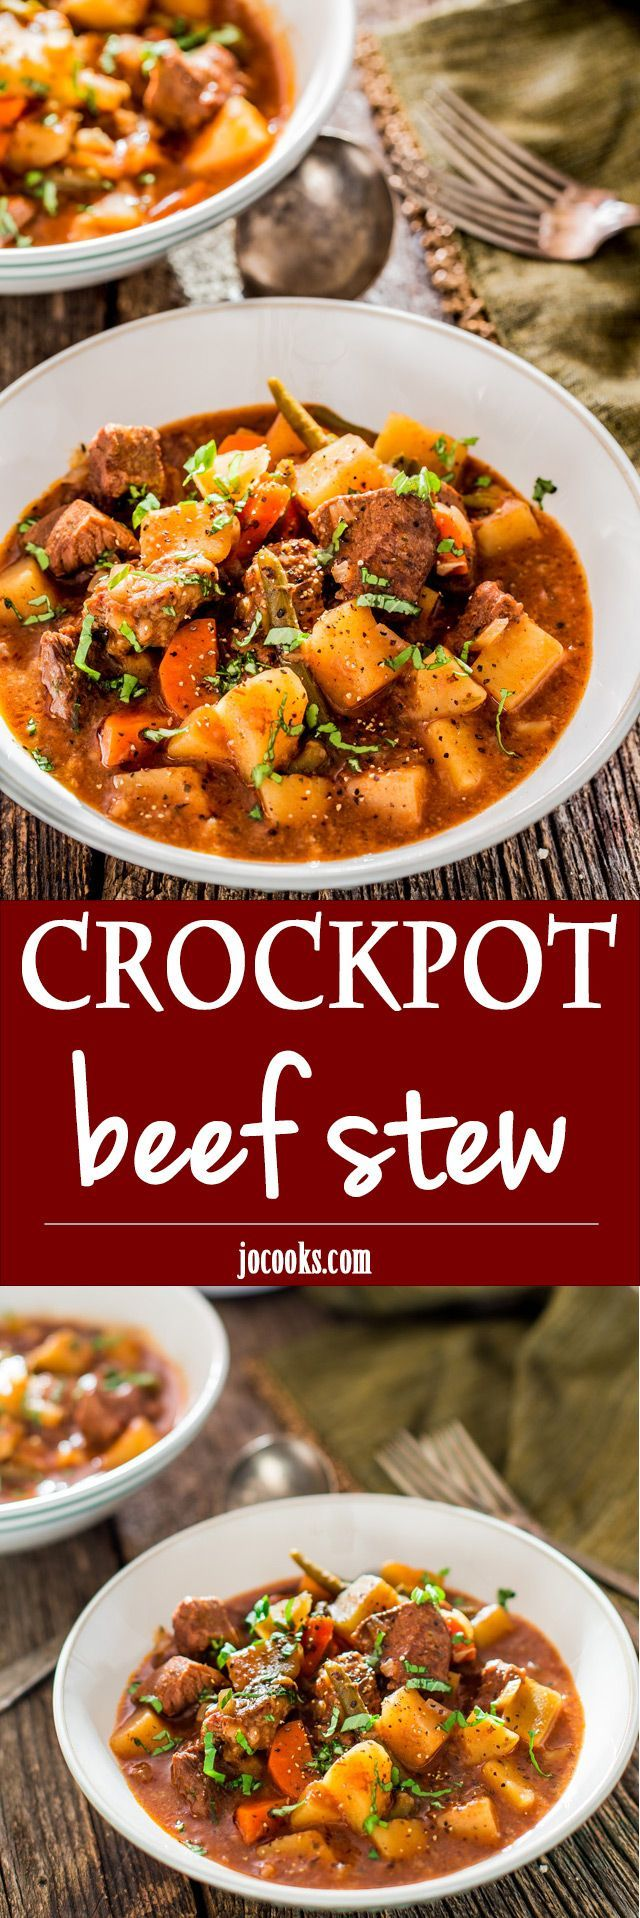 Crockpot Beef Stew A Hearty And Savory Slow Cooker Beef Stew Perfect For Those Cold Winter Nights Slow Cooker Beef Stew Beef Stew Recipe Beef Stew Crockpot